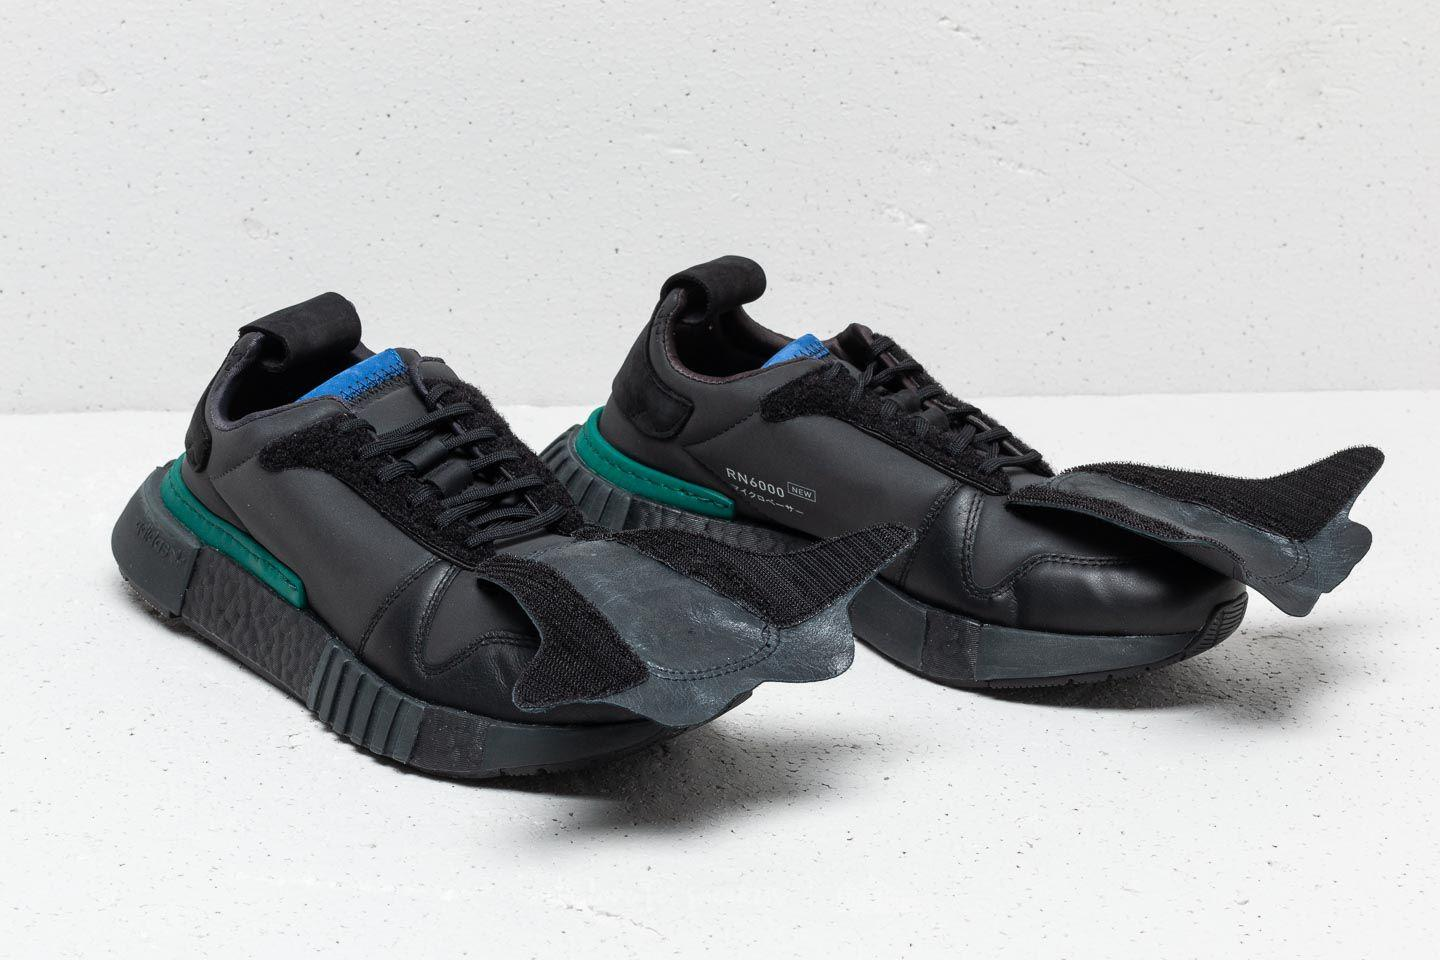 separation shoes cad44 aa2b3 Lyst - adidas Originals Adidas Futurepacer Core Black Carbon